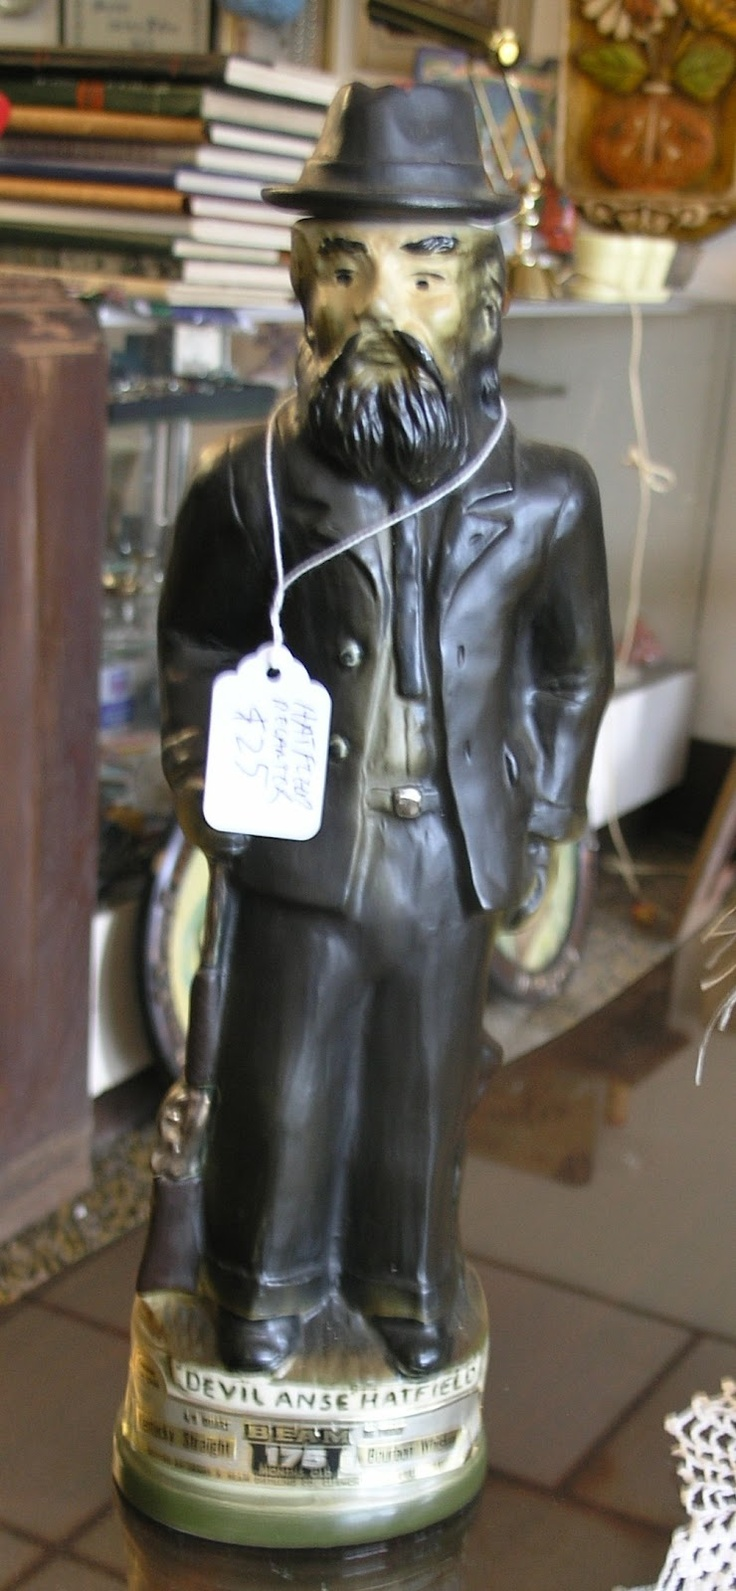 Devil Anse Hatfield liquor decanter